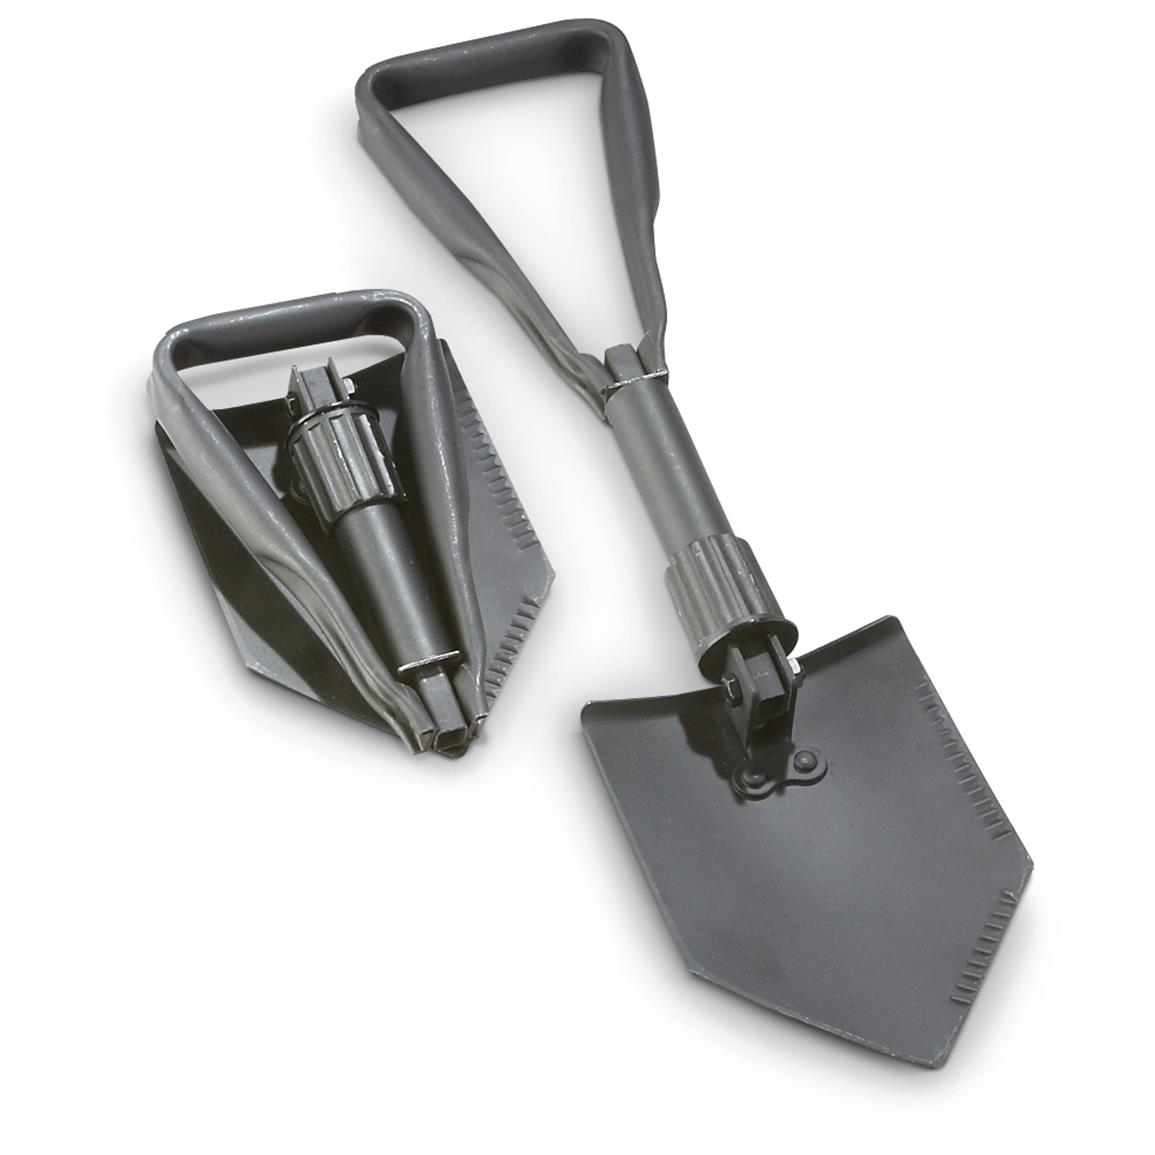 2 Military-spec Trifold Shovels, Black • Folds compactly for easy storage